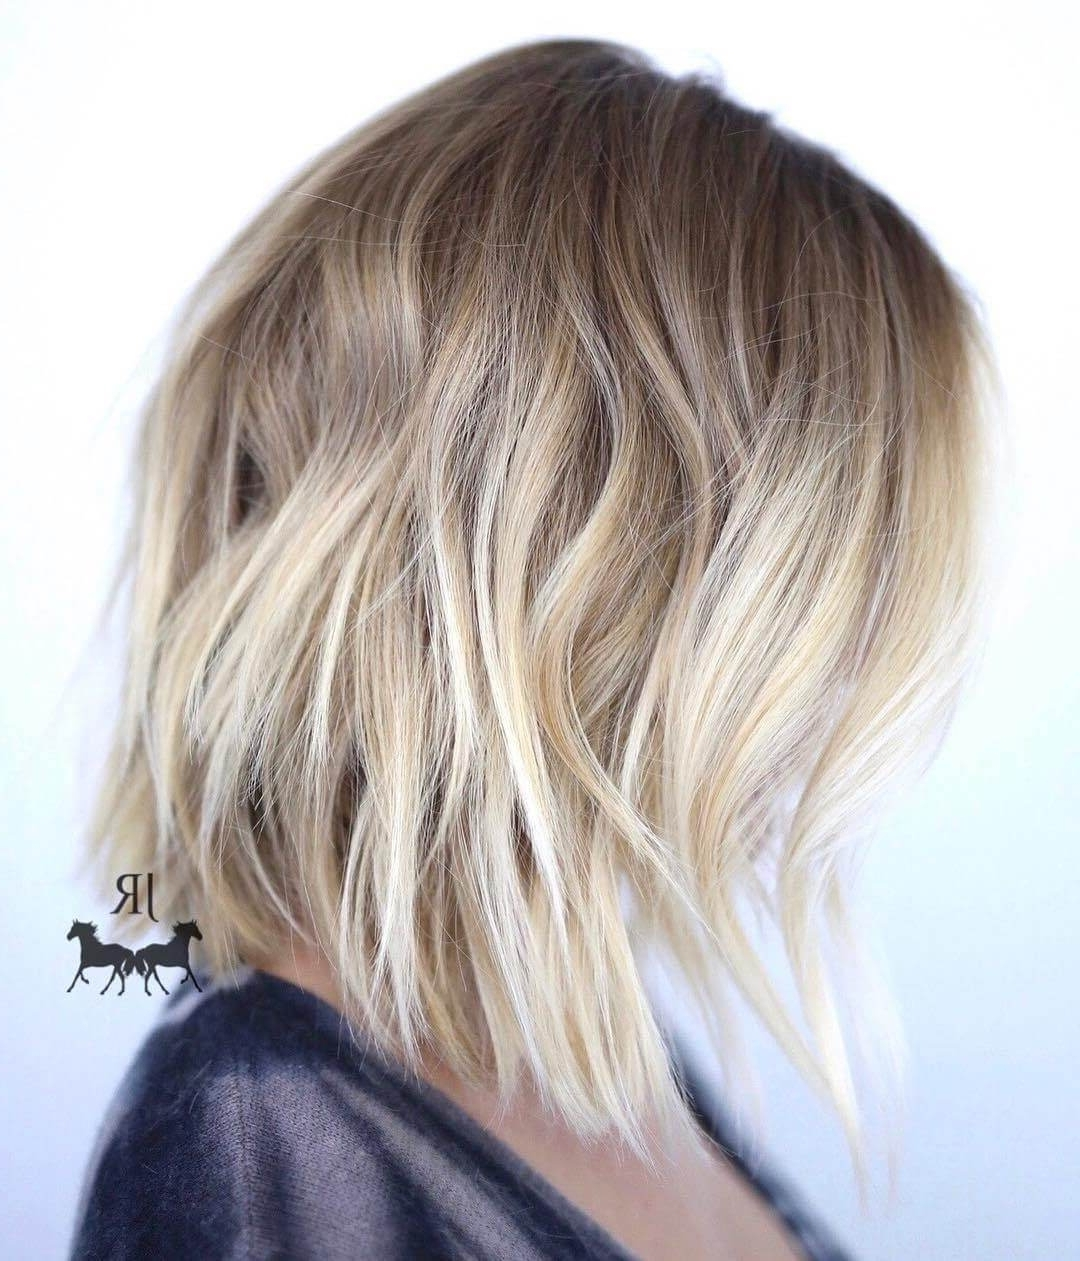 50 Fresh Short Blonde Hair Ideas To Update Your Style In 2018 Intended For Newest Dark Blonde Into White Hairstyles (View 6 of 20)